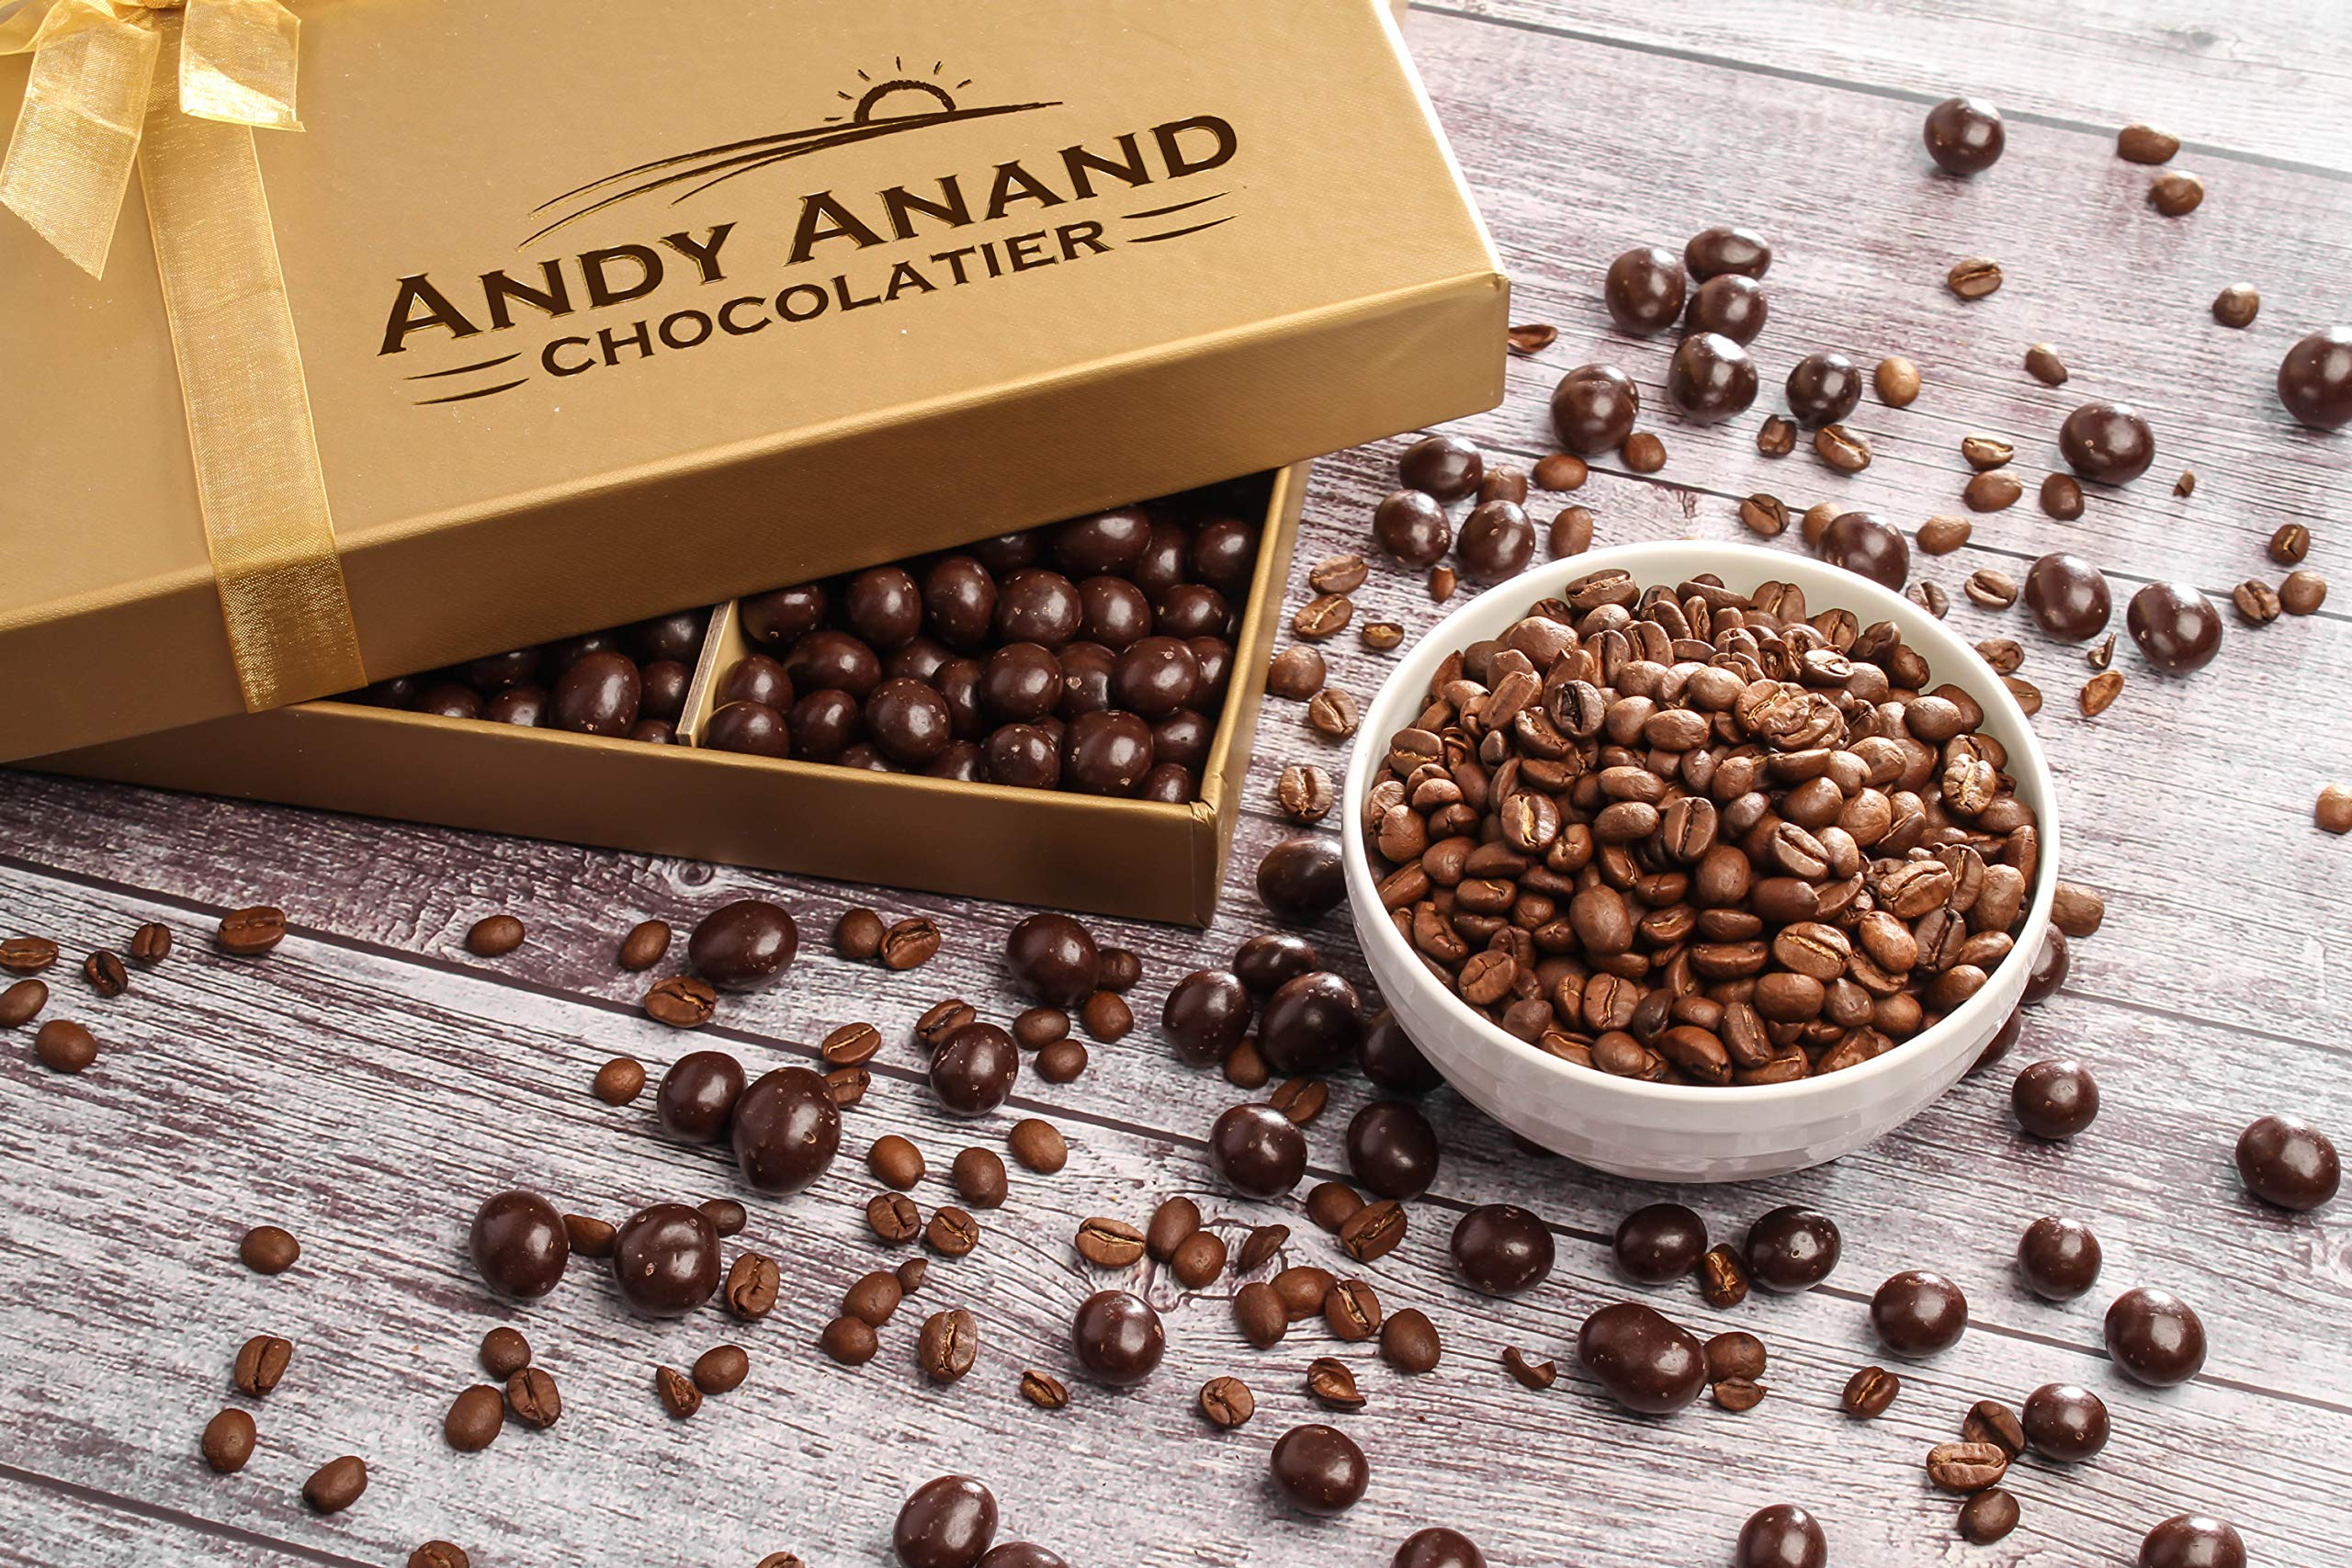 Andy Anand's California Dark Chocolate Covered Espresso Coffee Beans 1 lbs, for Birthday, Valentine Day, Gourmet Christmas Holiday Food Gift Basket, Thanksgiving, Mothers Fathers Day, Get Well Gift by Andy Anand Chocolates